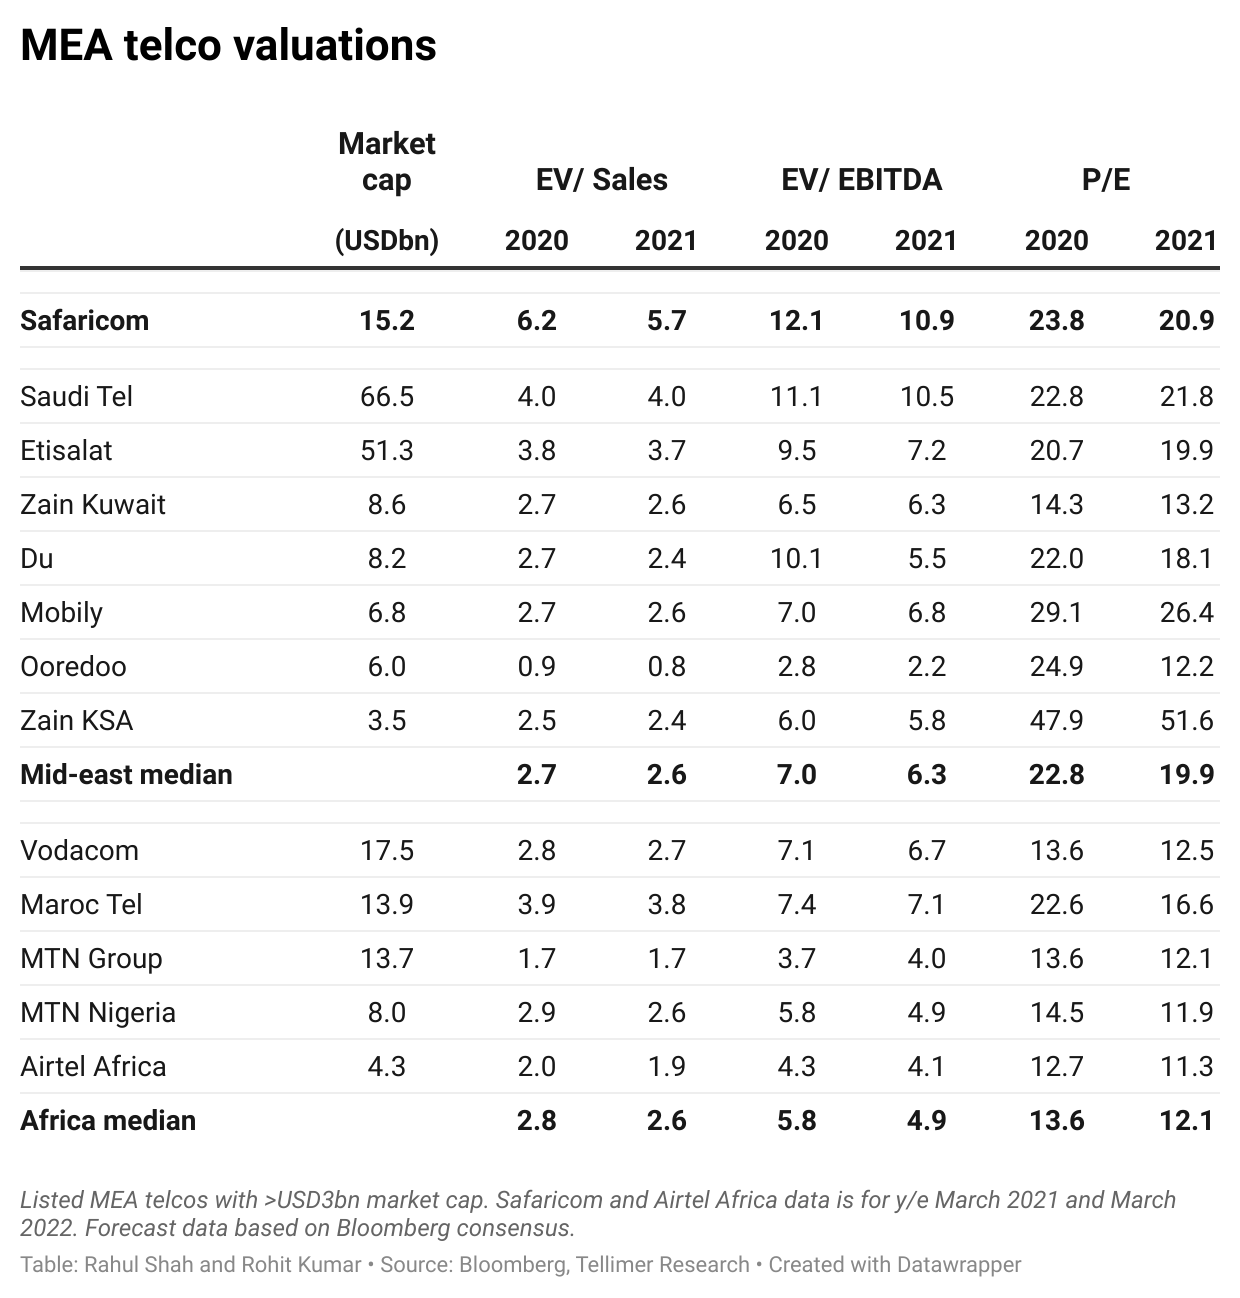 MEA telco valuations